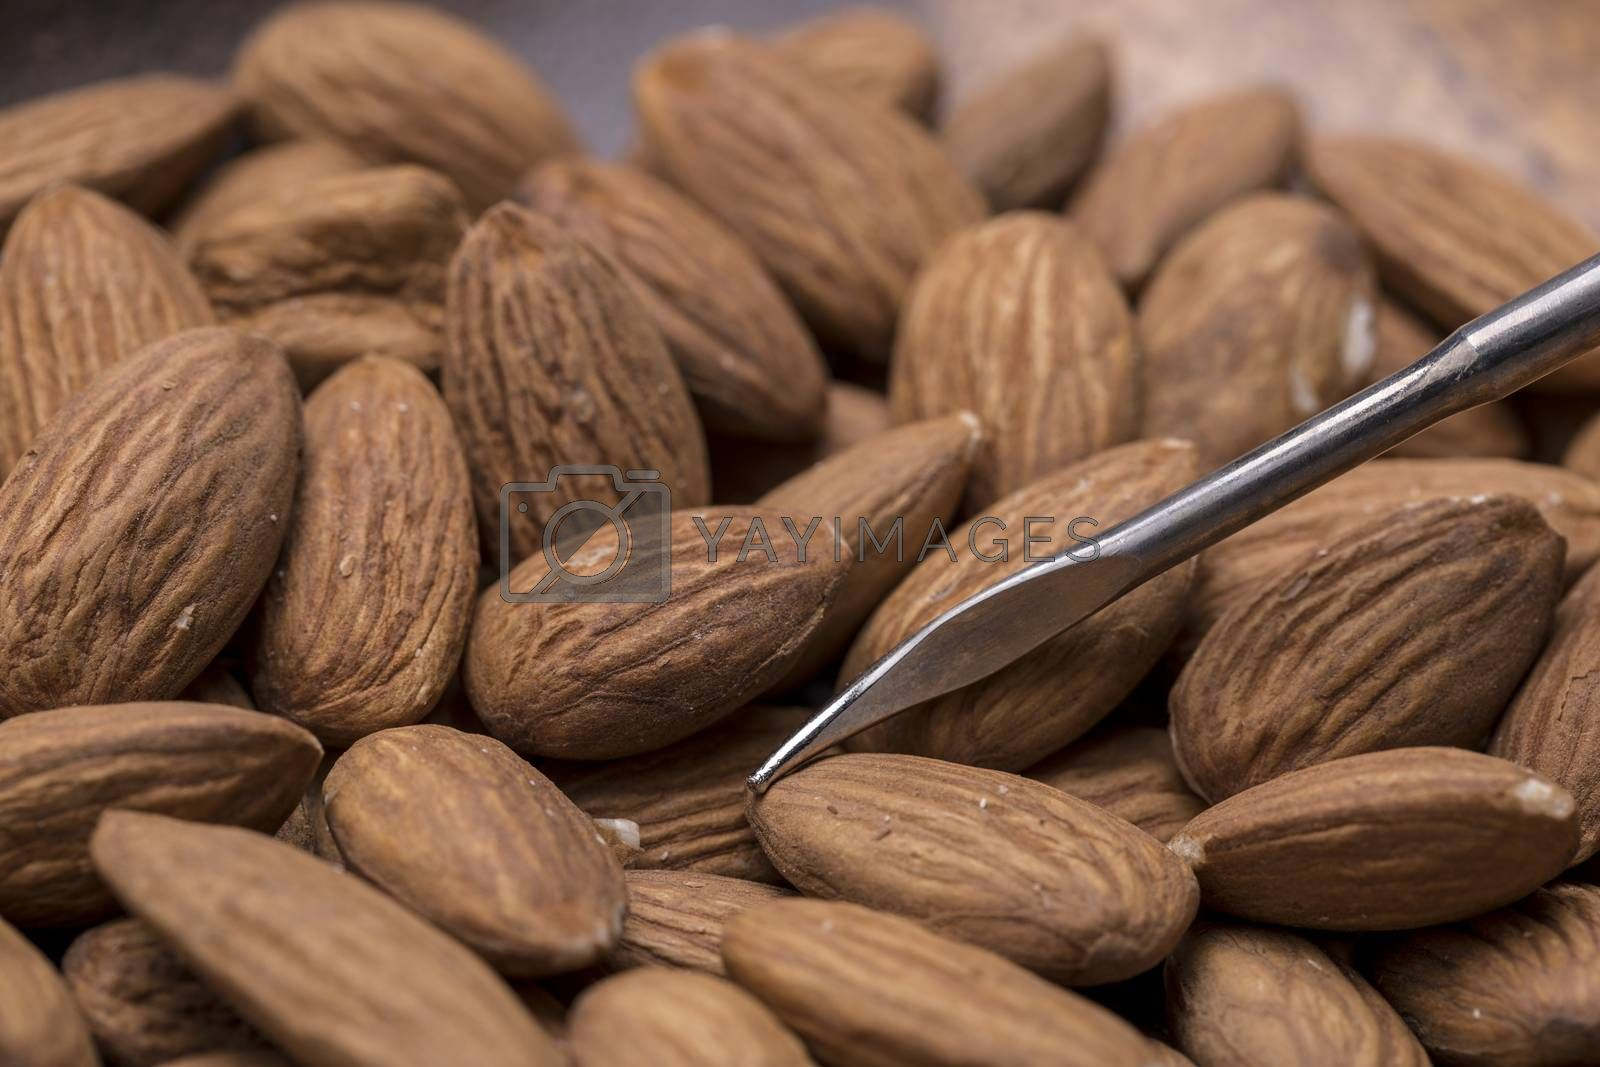 A close up of fresh shelled almonds on a wooden plate.